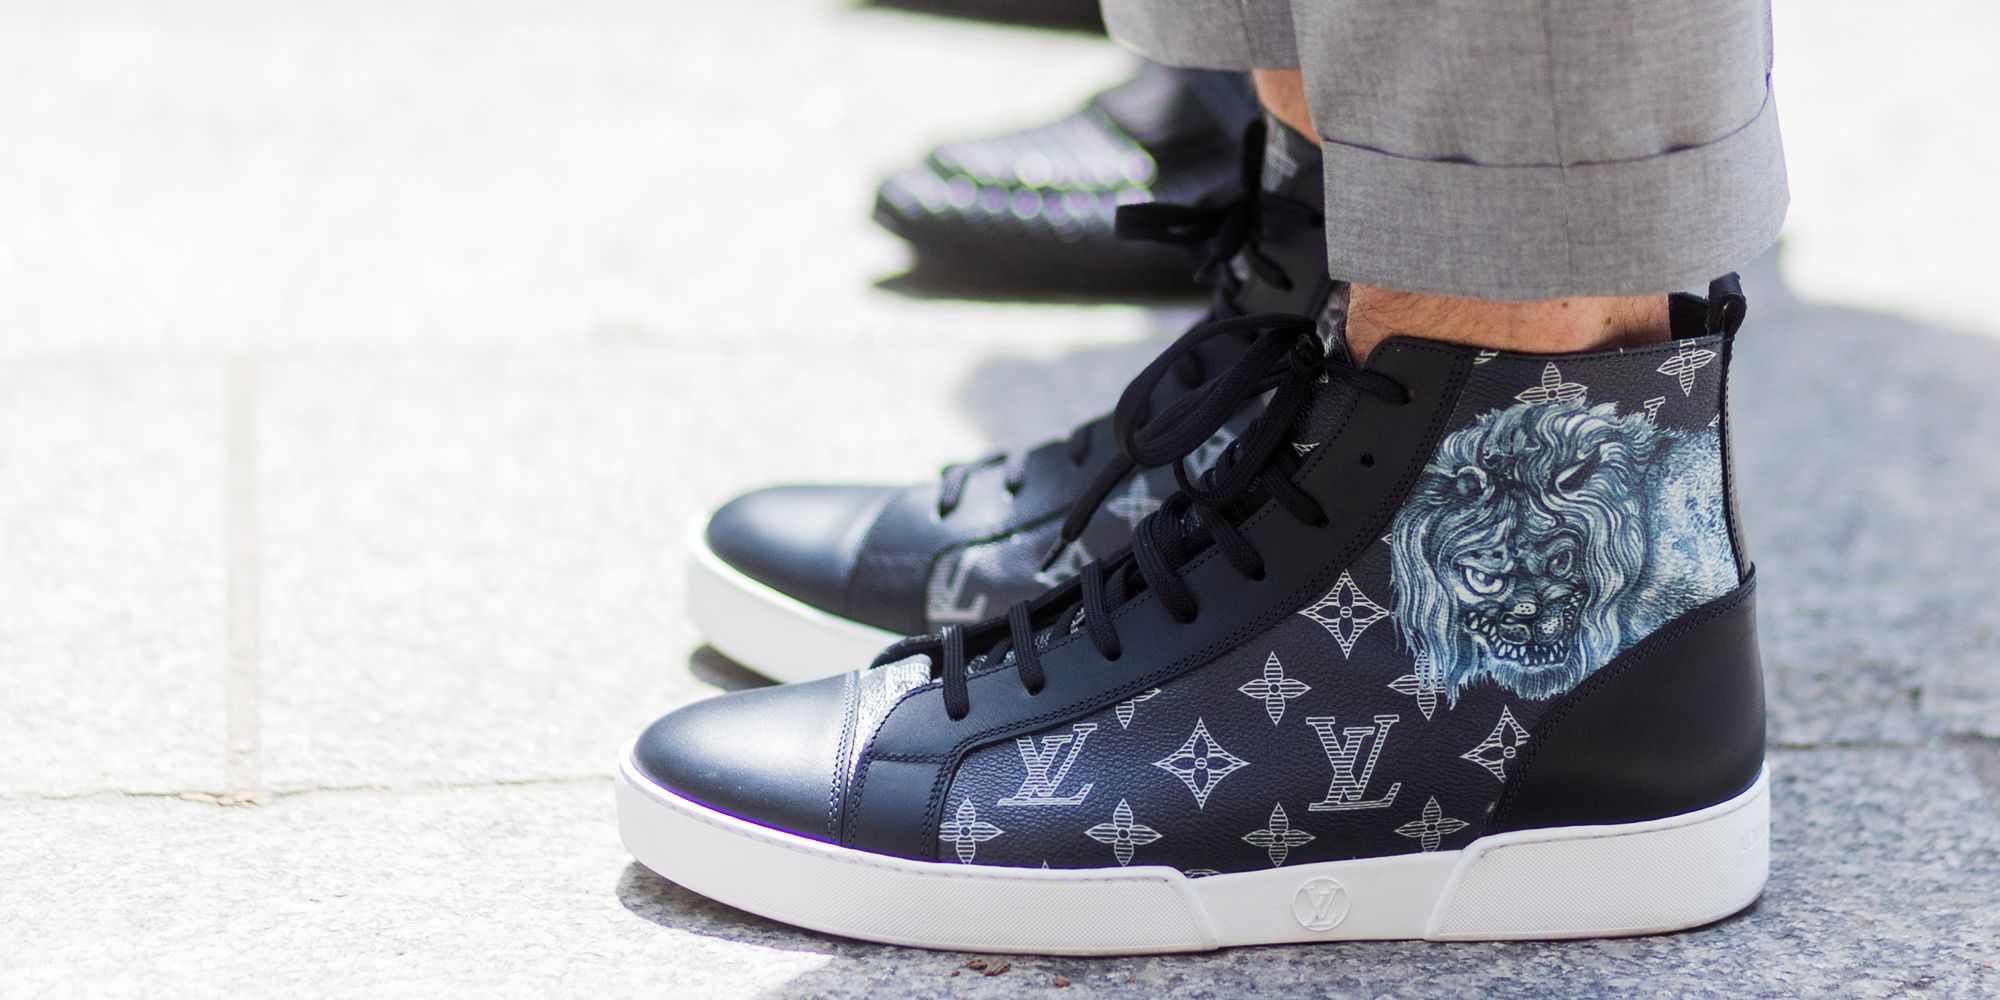 Right High Now Coolest High Top Men Out Tops for Best Sneakers 3cuJlKTF1